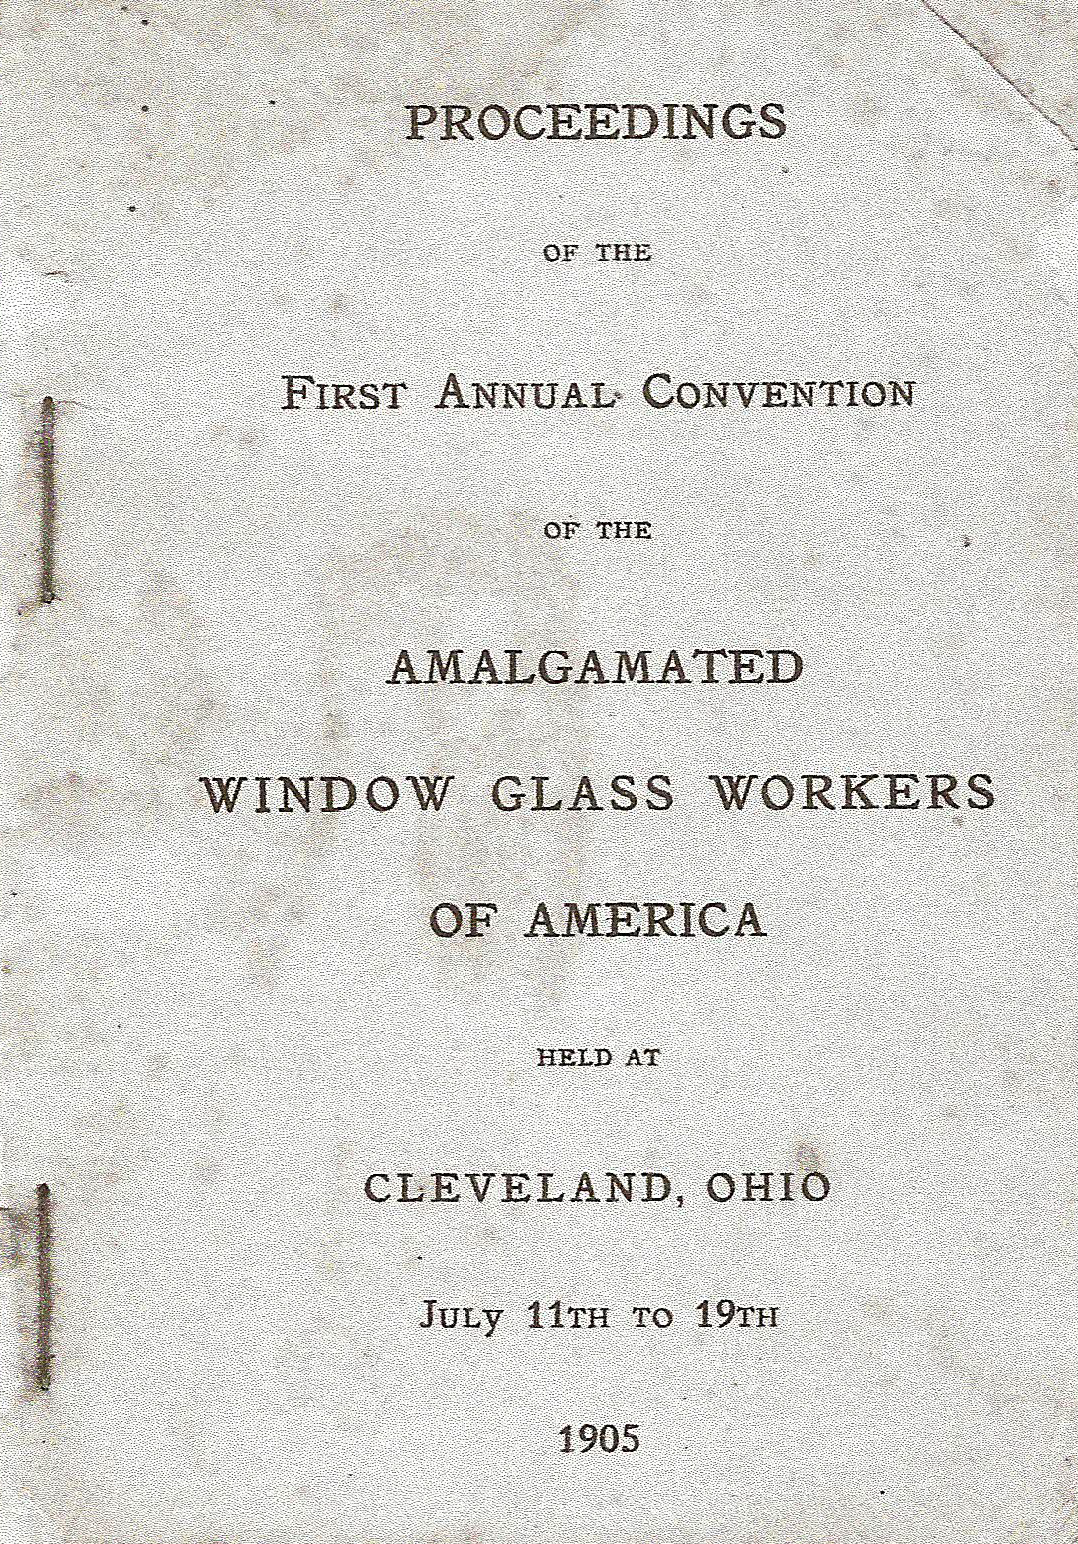 19050711 - Proceedings of the First Annual Convention of the Amalgamated Window Glass Workers of America